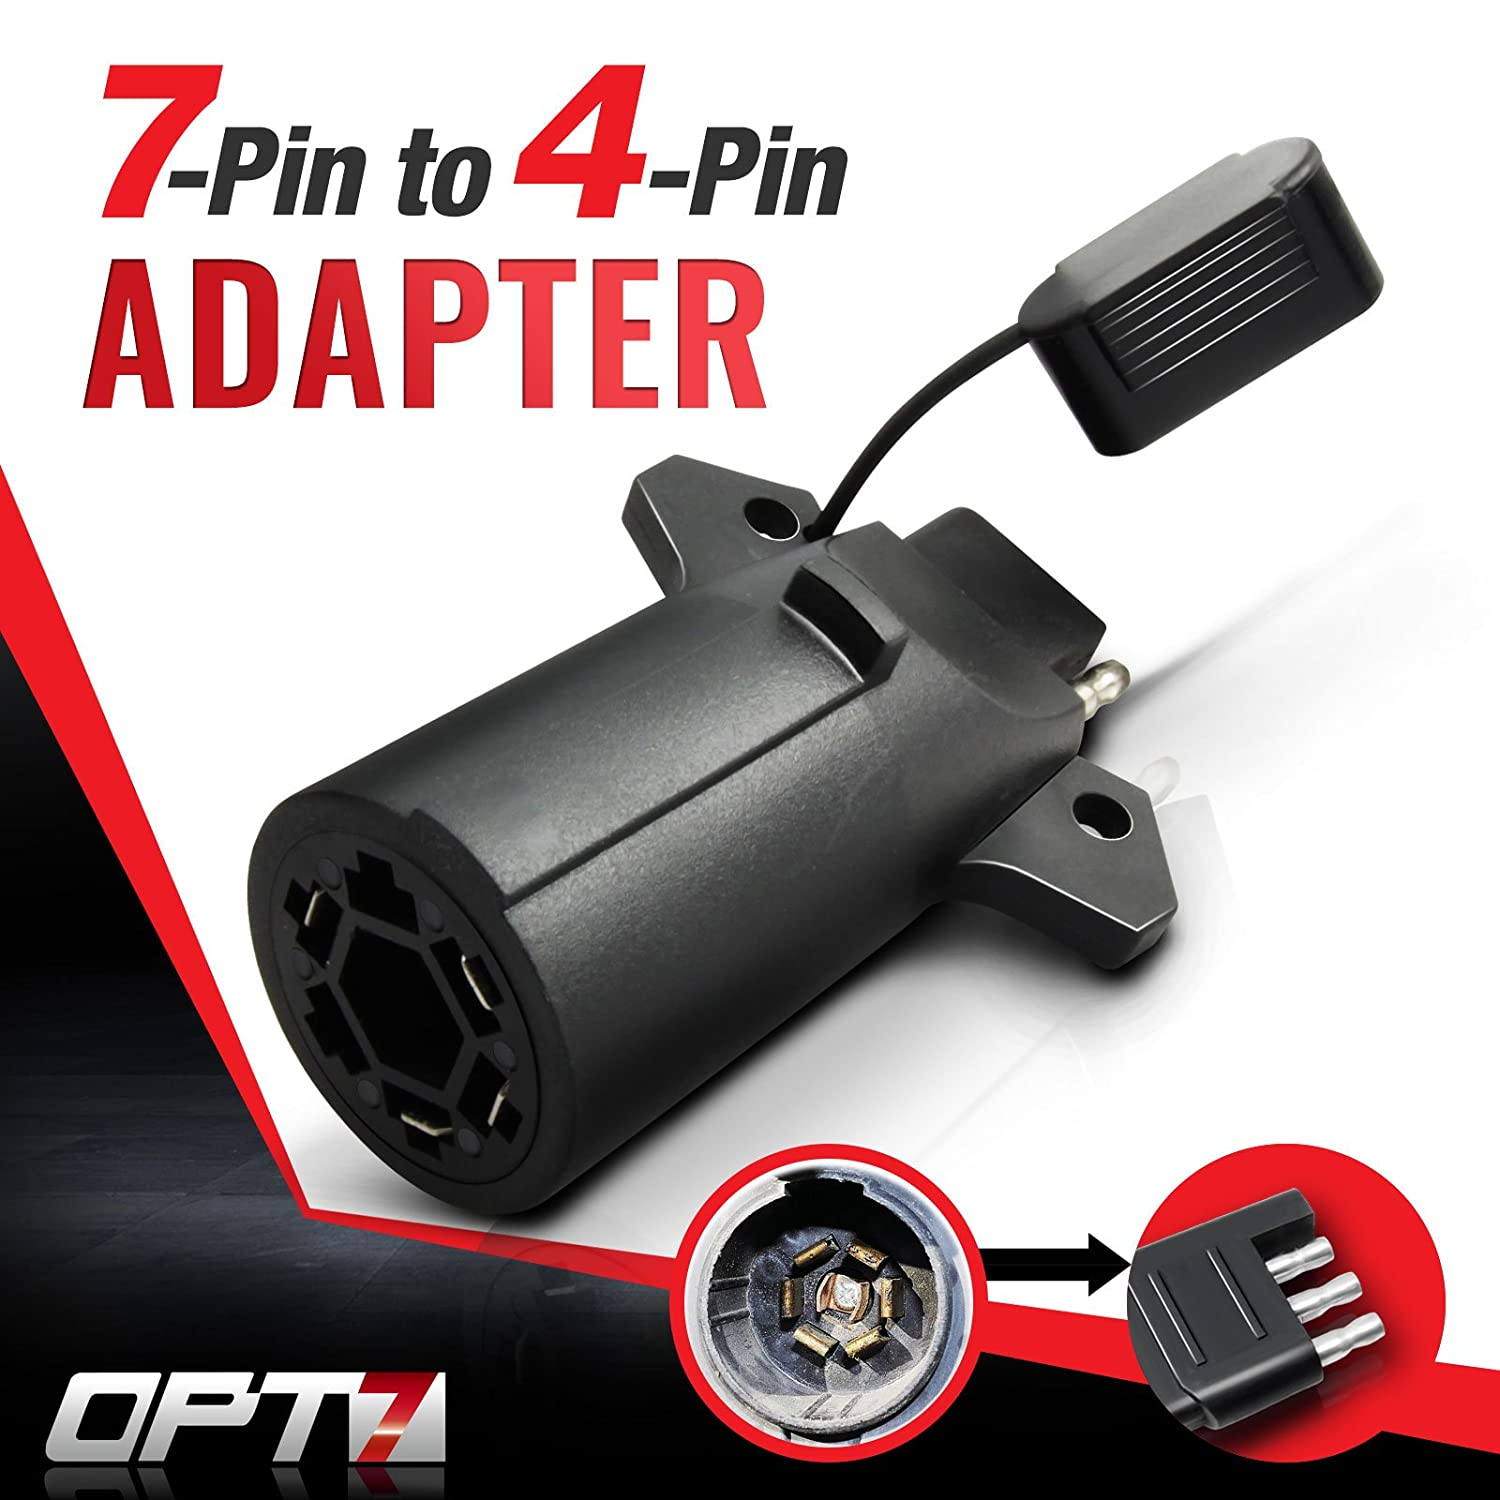 Amazon.com: OPT7 Weatherproof 7 Way Flat Blade to 4 Way Pin Adapter ...